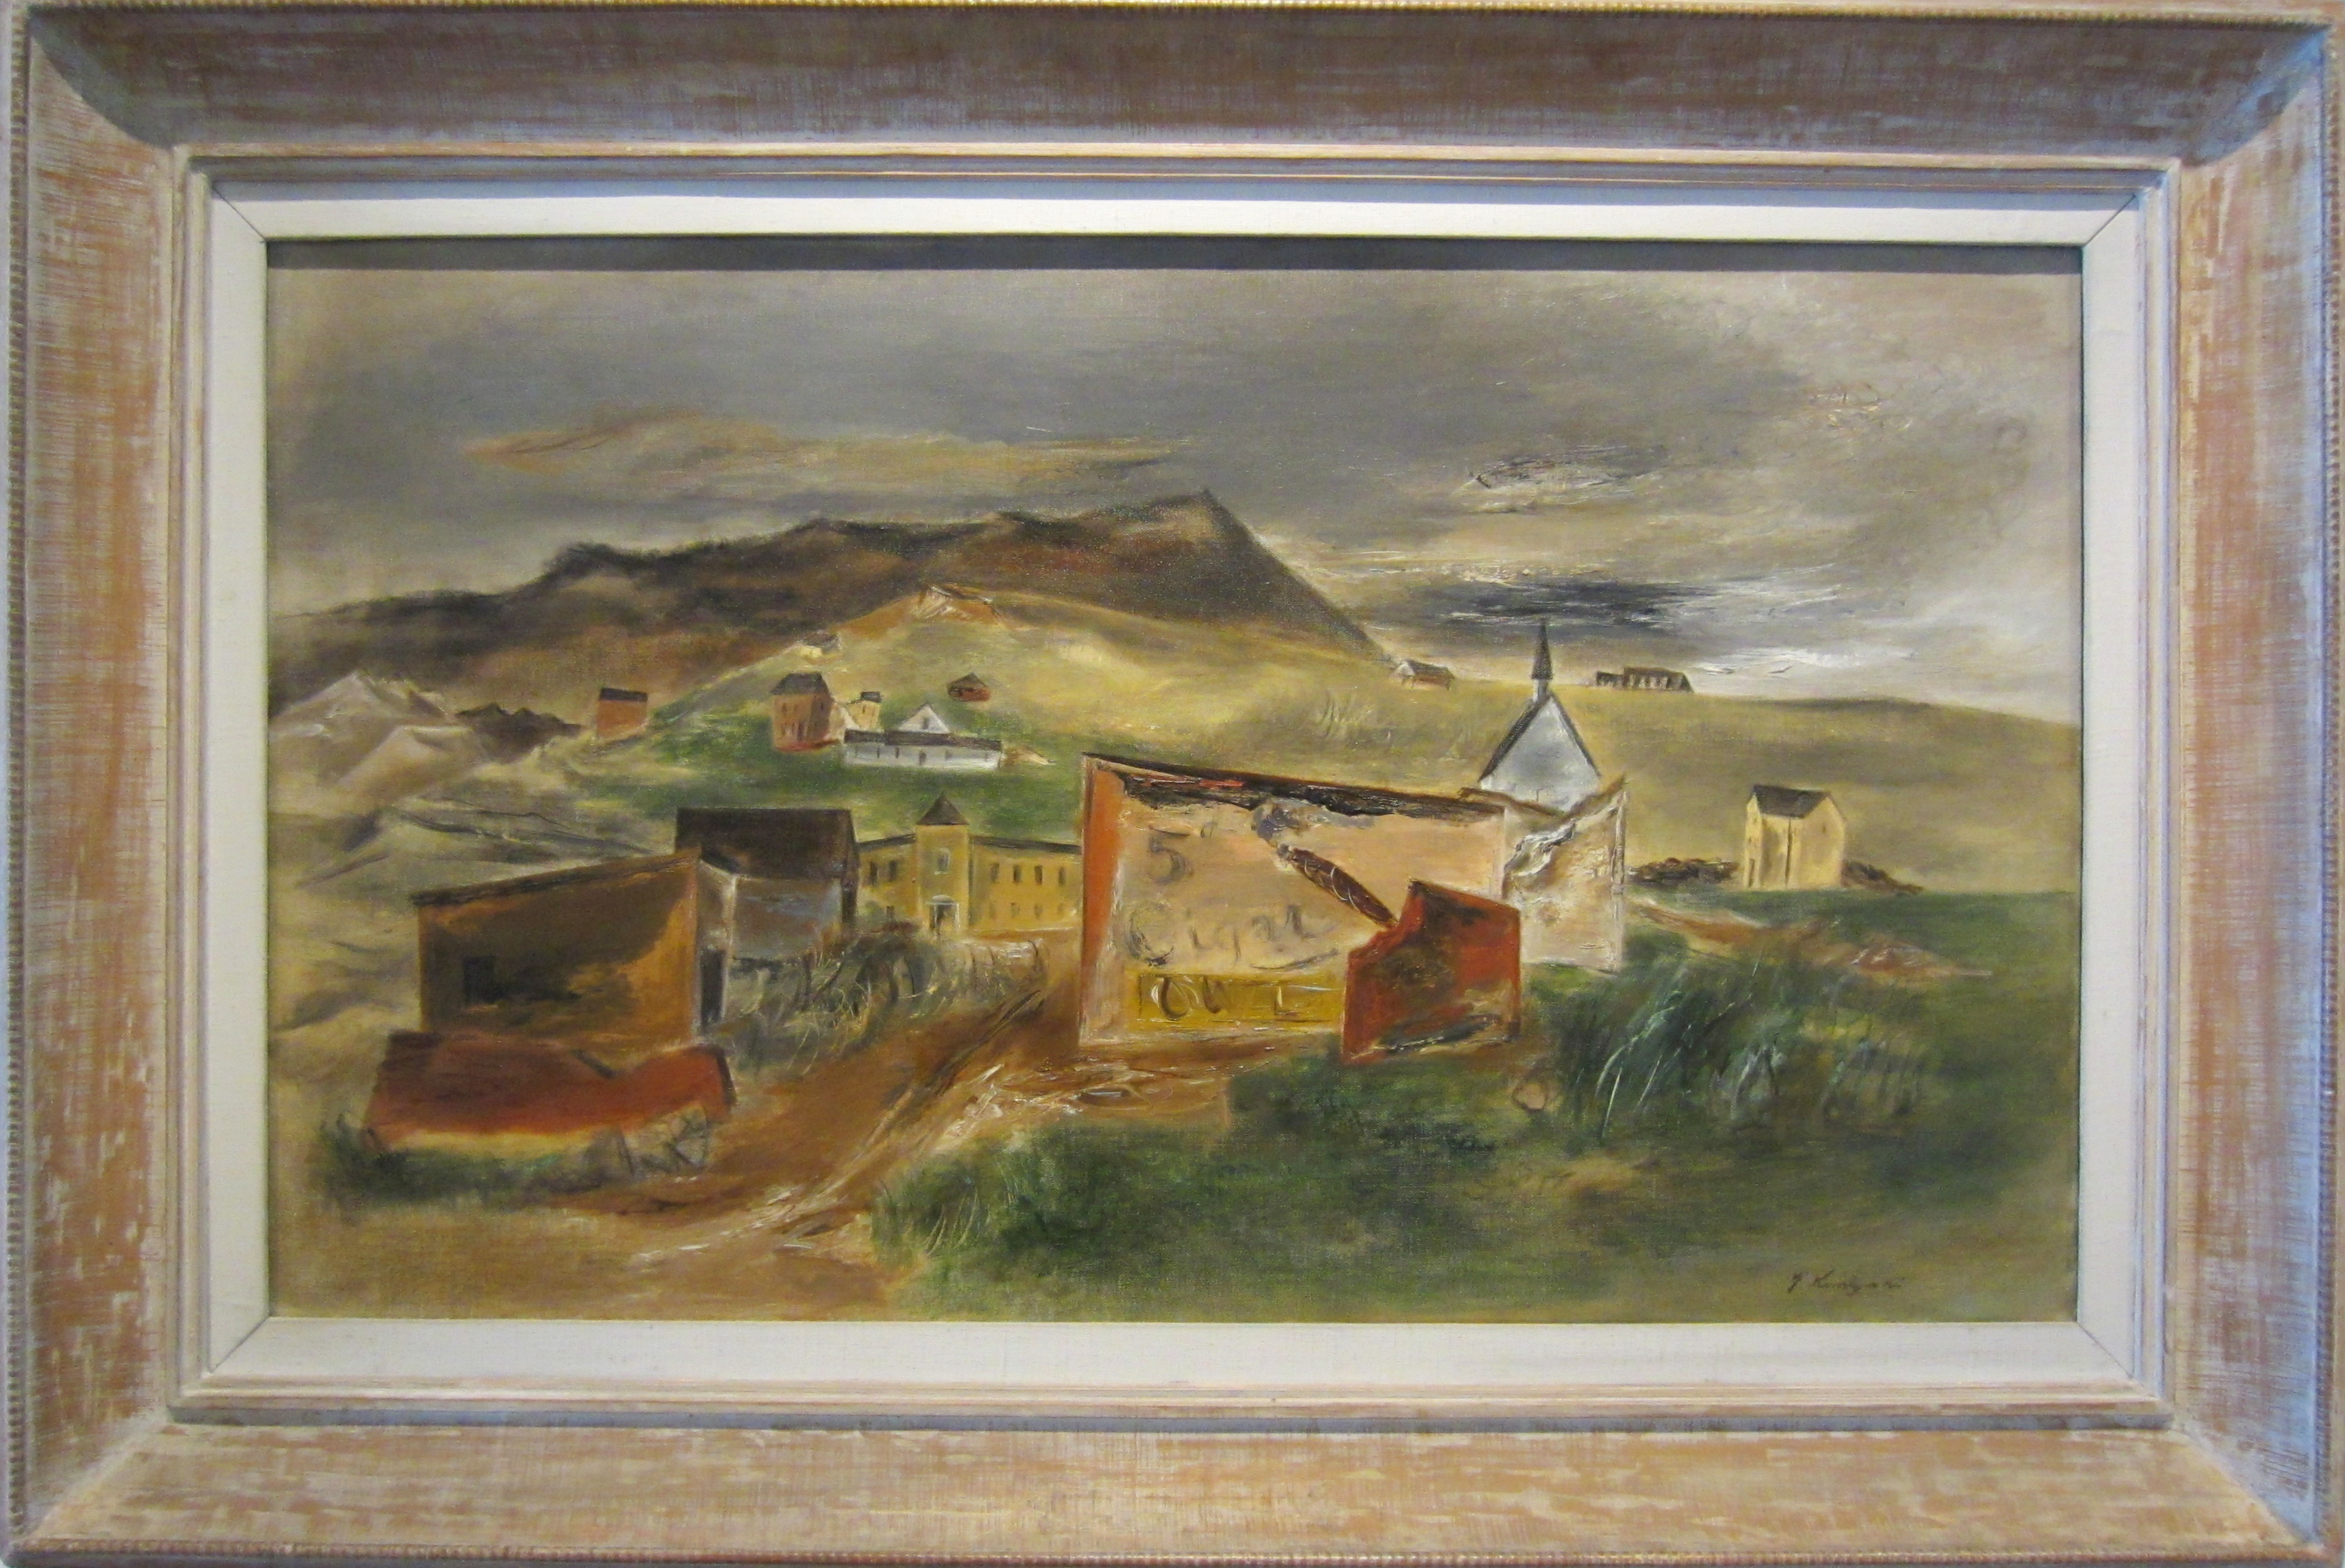 an analysis of jacob lawrences painting catfish row Zimbabwean history in context: a comparison of the history book an analysis of jacob lawrences painting catfish row with existent history curriculum and teaching a.